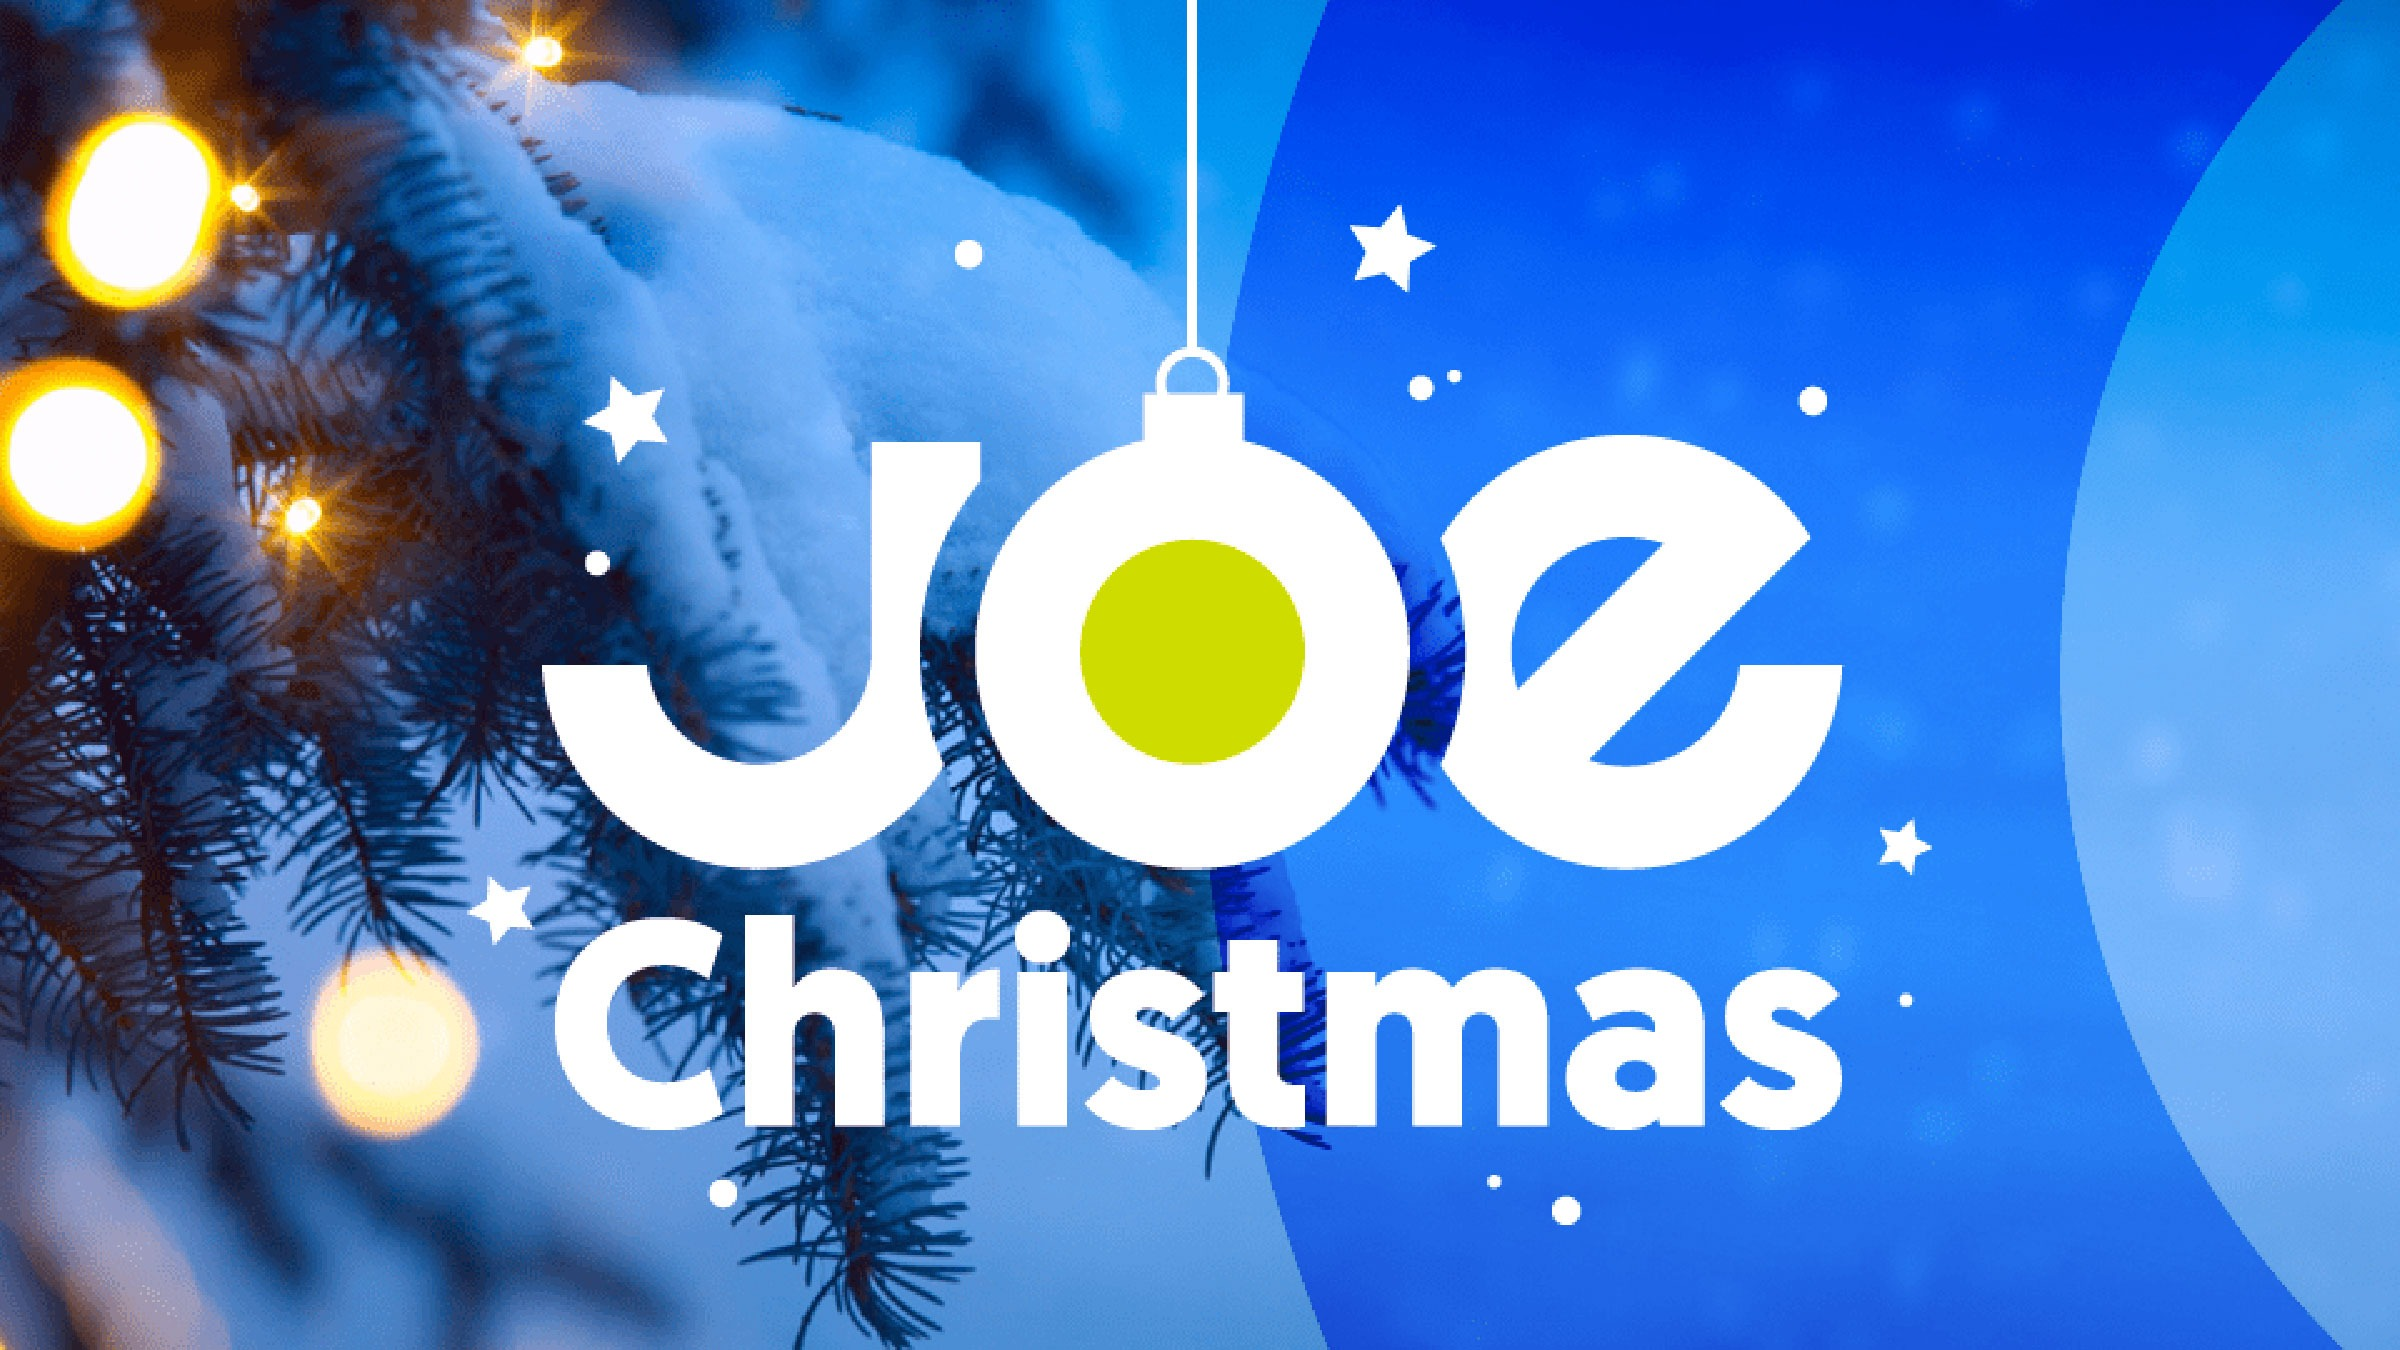 Joe christmas radio